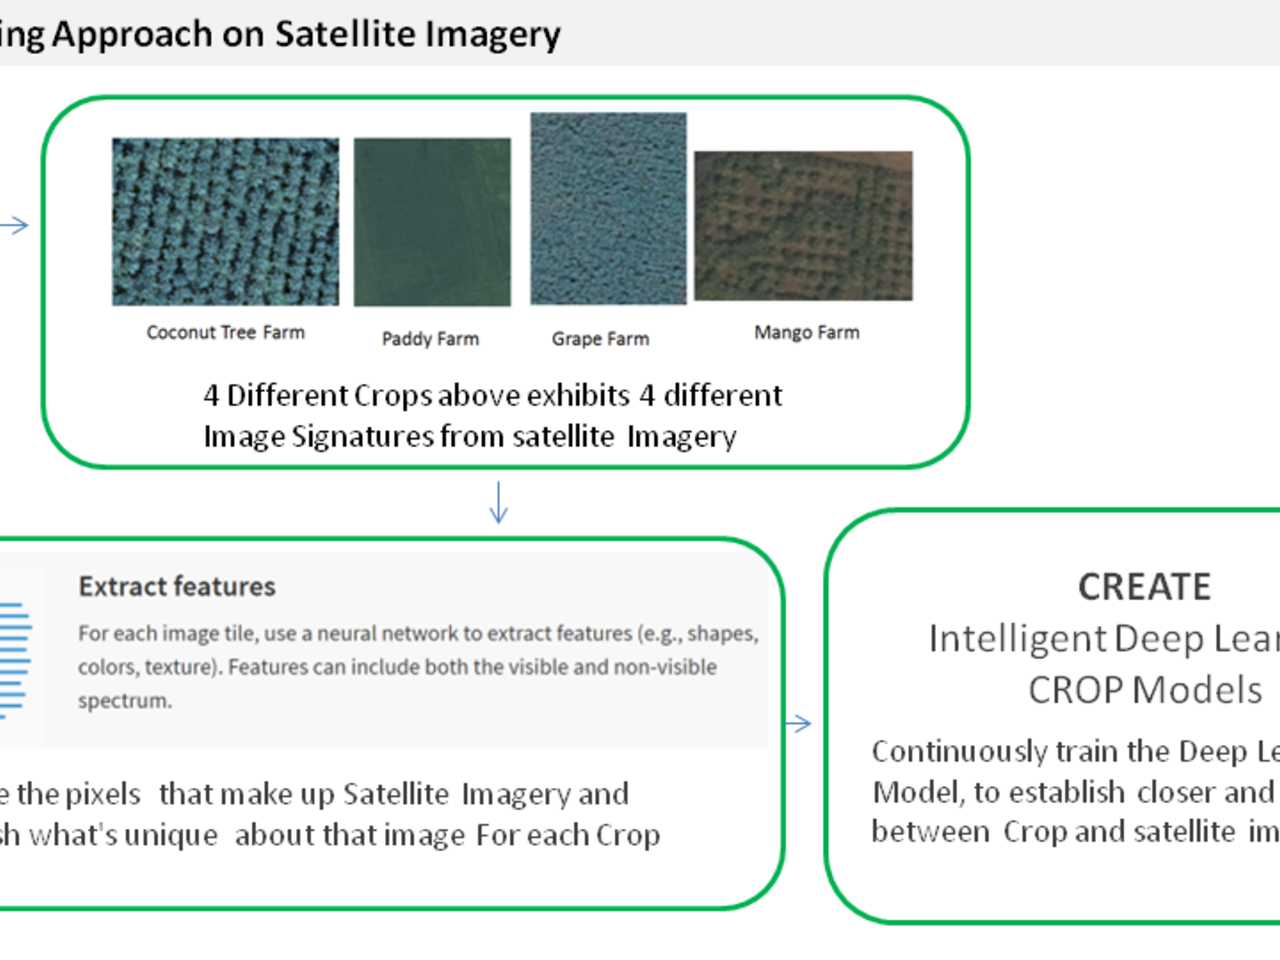 Crop health analysis and prediction through satellite imagery